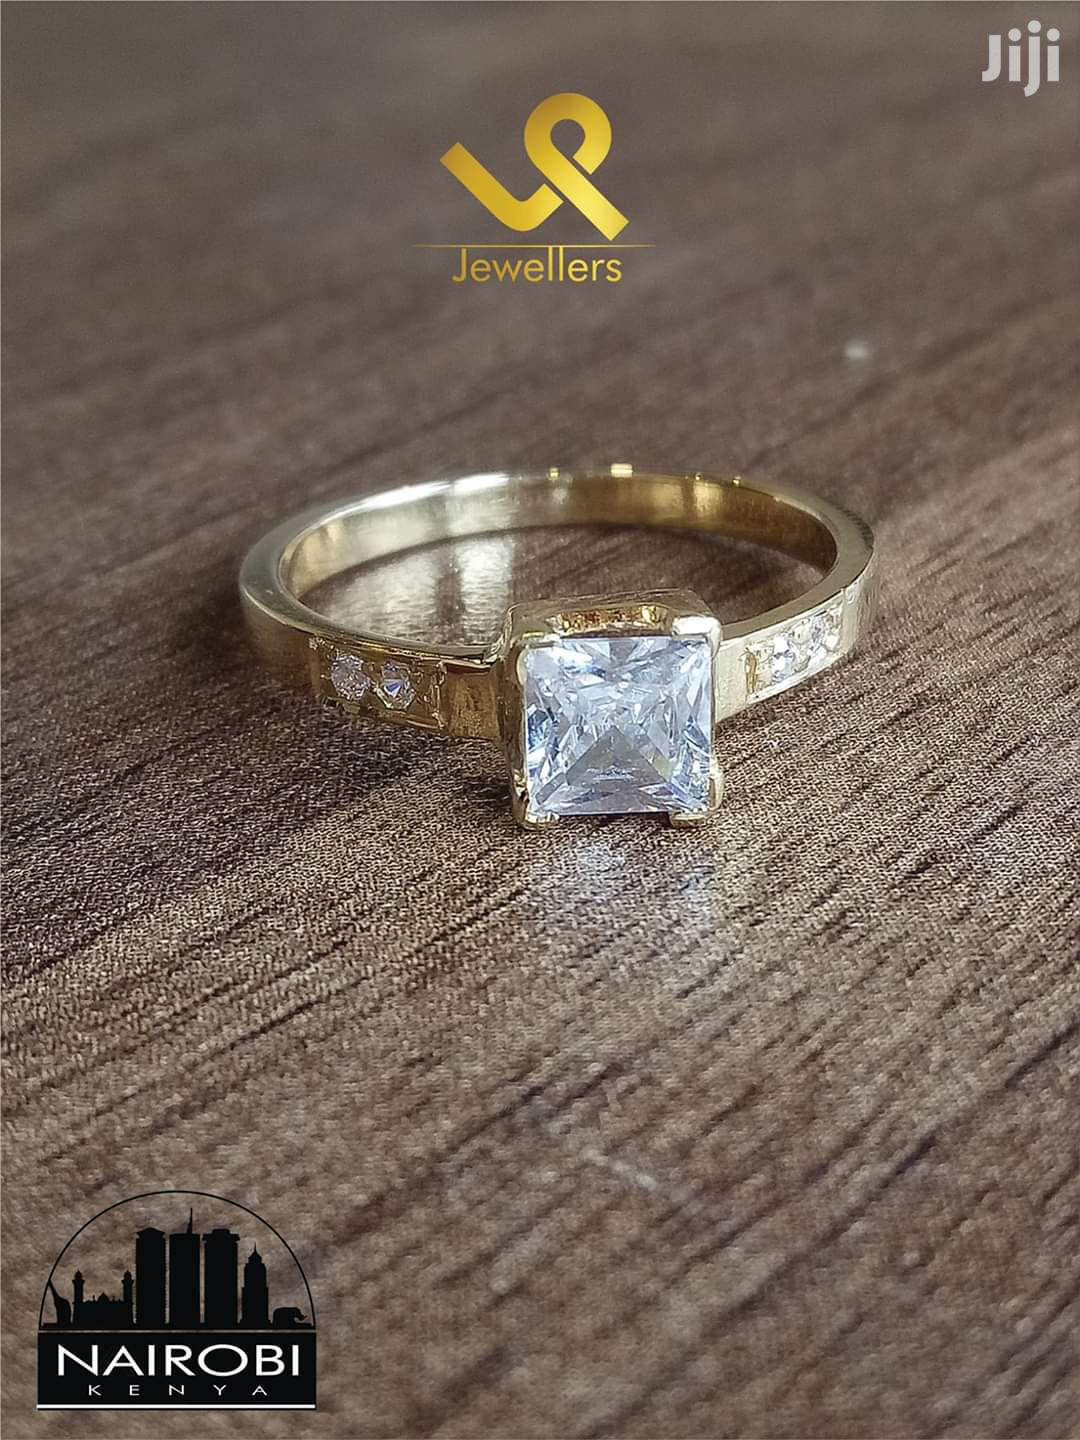 Ladies Custom Hand Crafted Yellow Gold Engagement Ring   Wedding Wear & Accessories for sale in Nairobi Central, Nairobi, Kenya